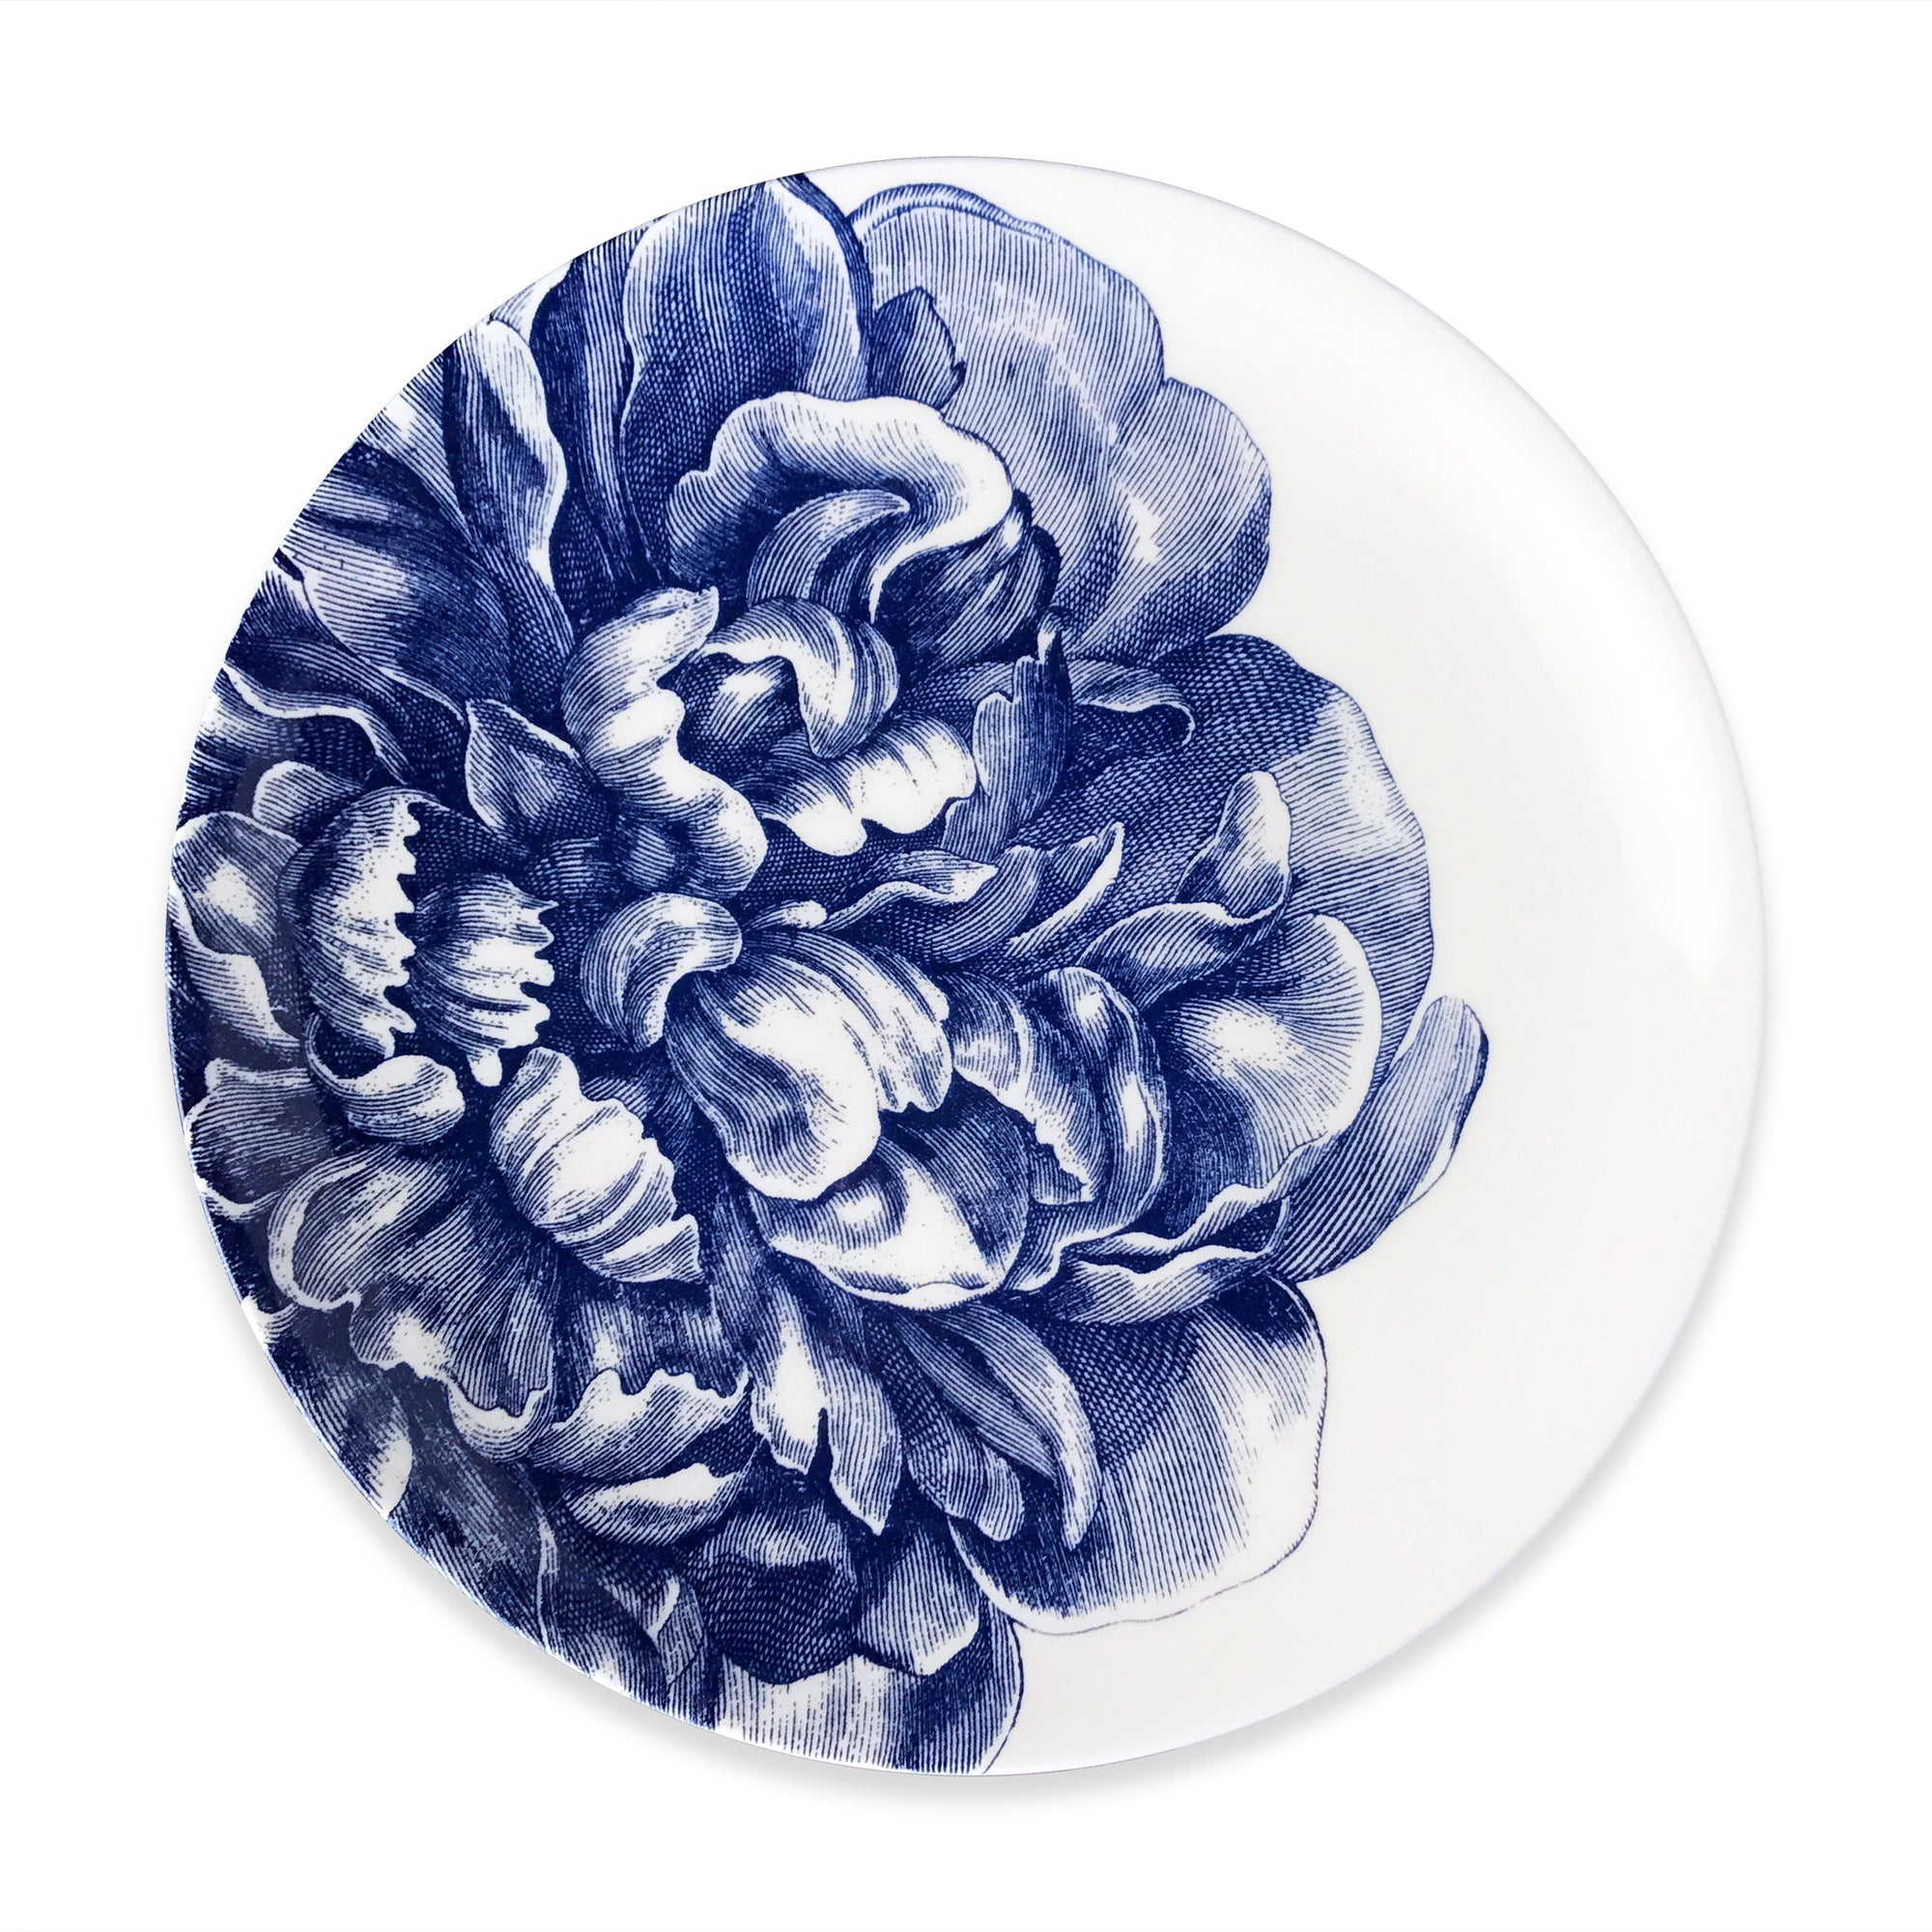 Blue Peony / Bloom -  Coupe Dinner Plate - Caskata